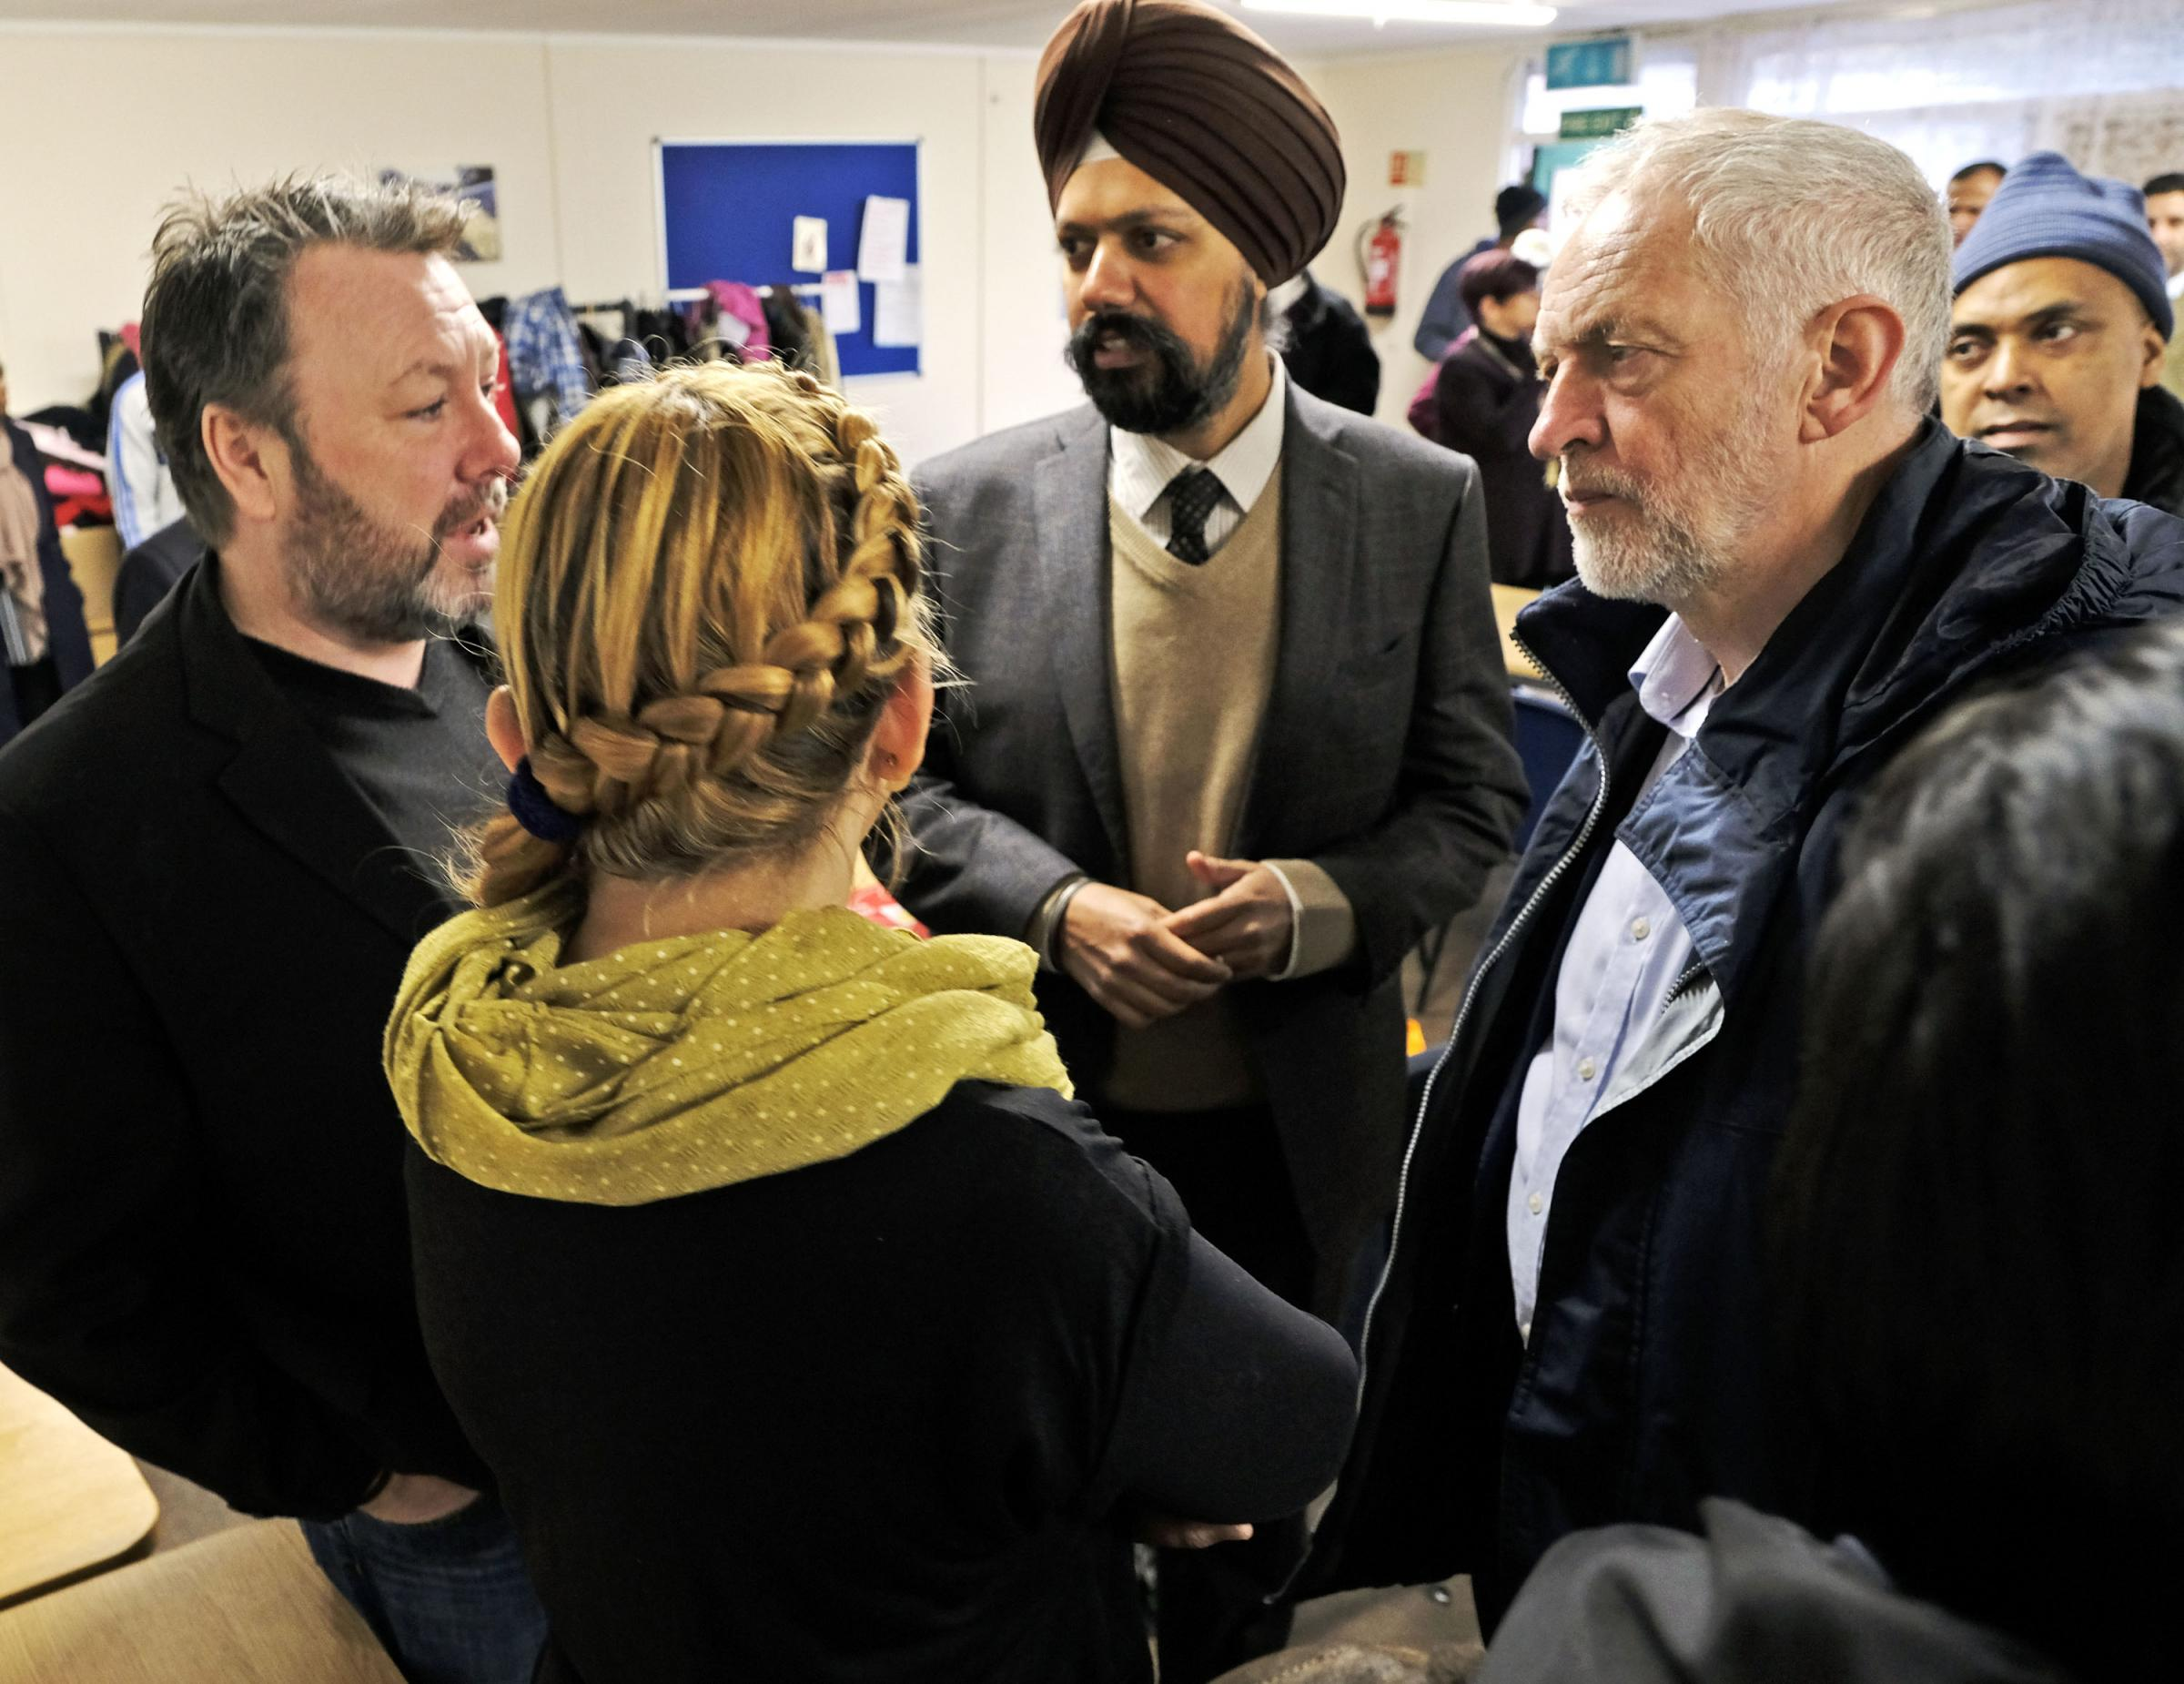 Labour leader Jeremy Corbyn gave his support to SHOC at a recent meeting